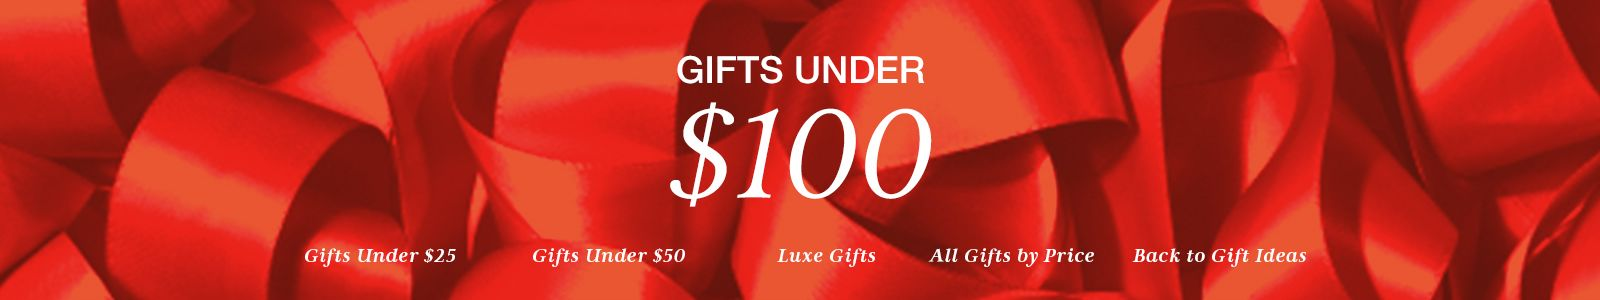 Gifts Under $100, Gifts Under $25, Gifts Under $50, Luxe Gifts, All Gifts by Price, Back to Gift Ideas